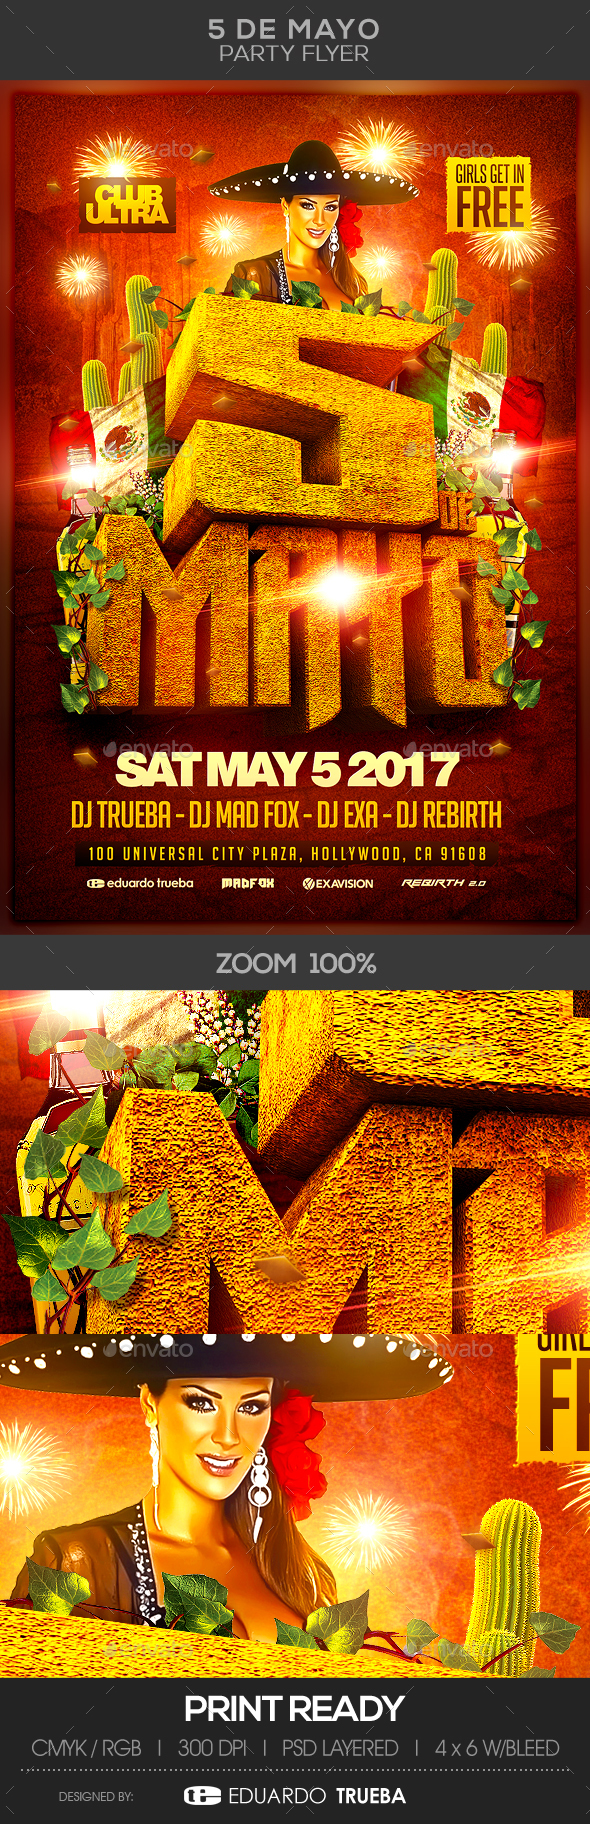 5 de Mayo Party Flyer - Holidays Events